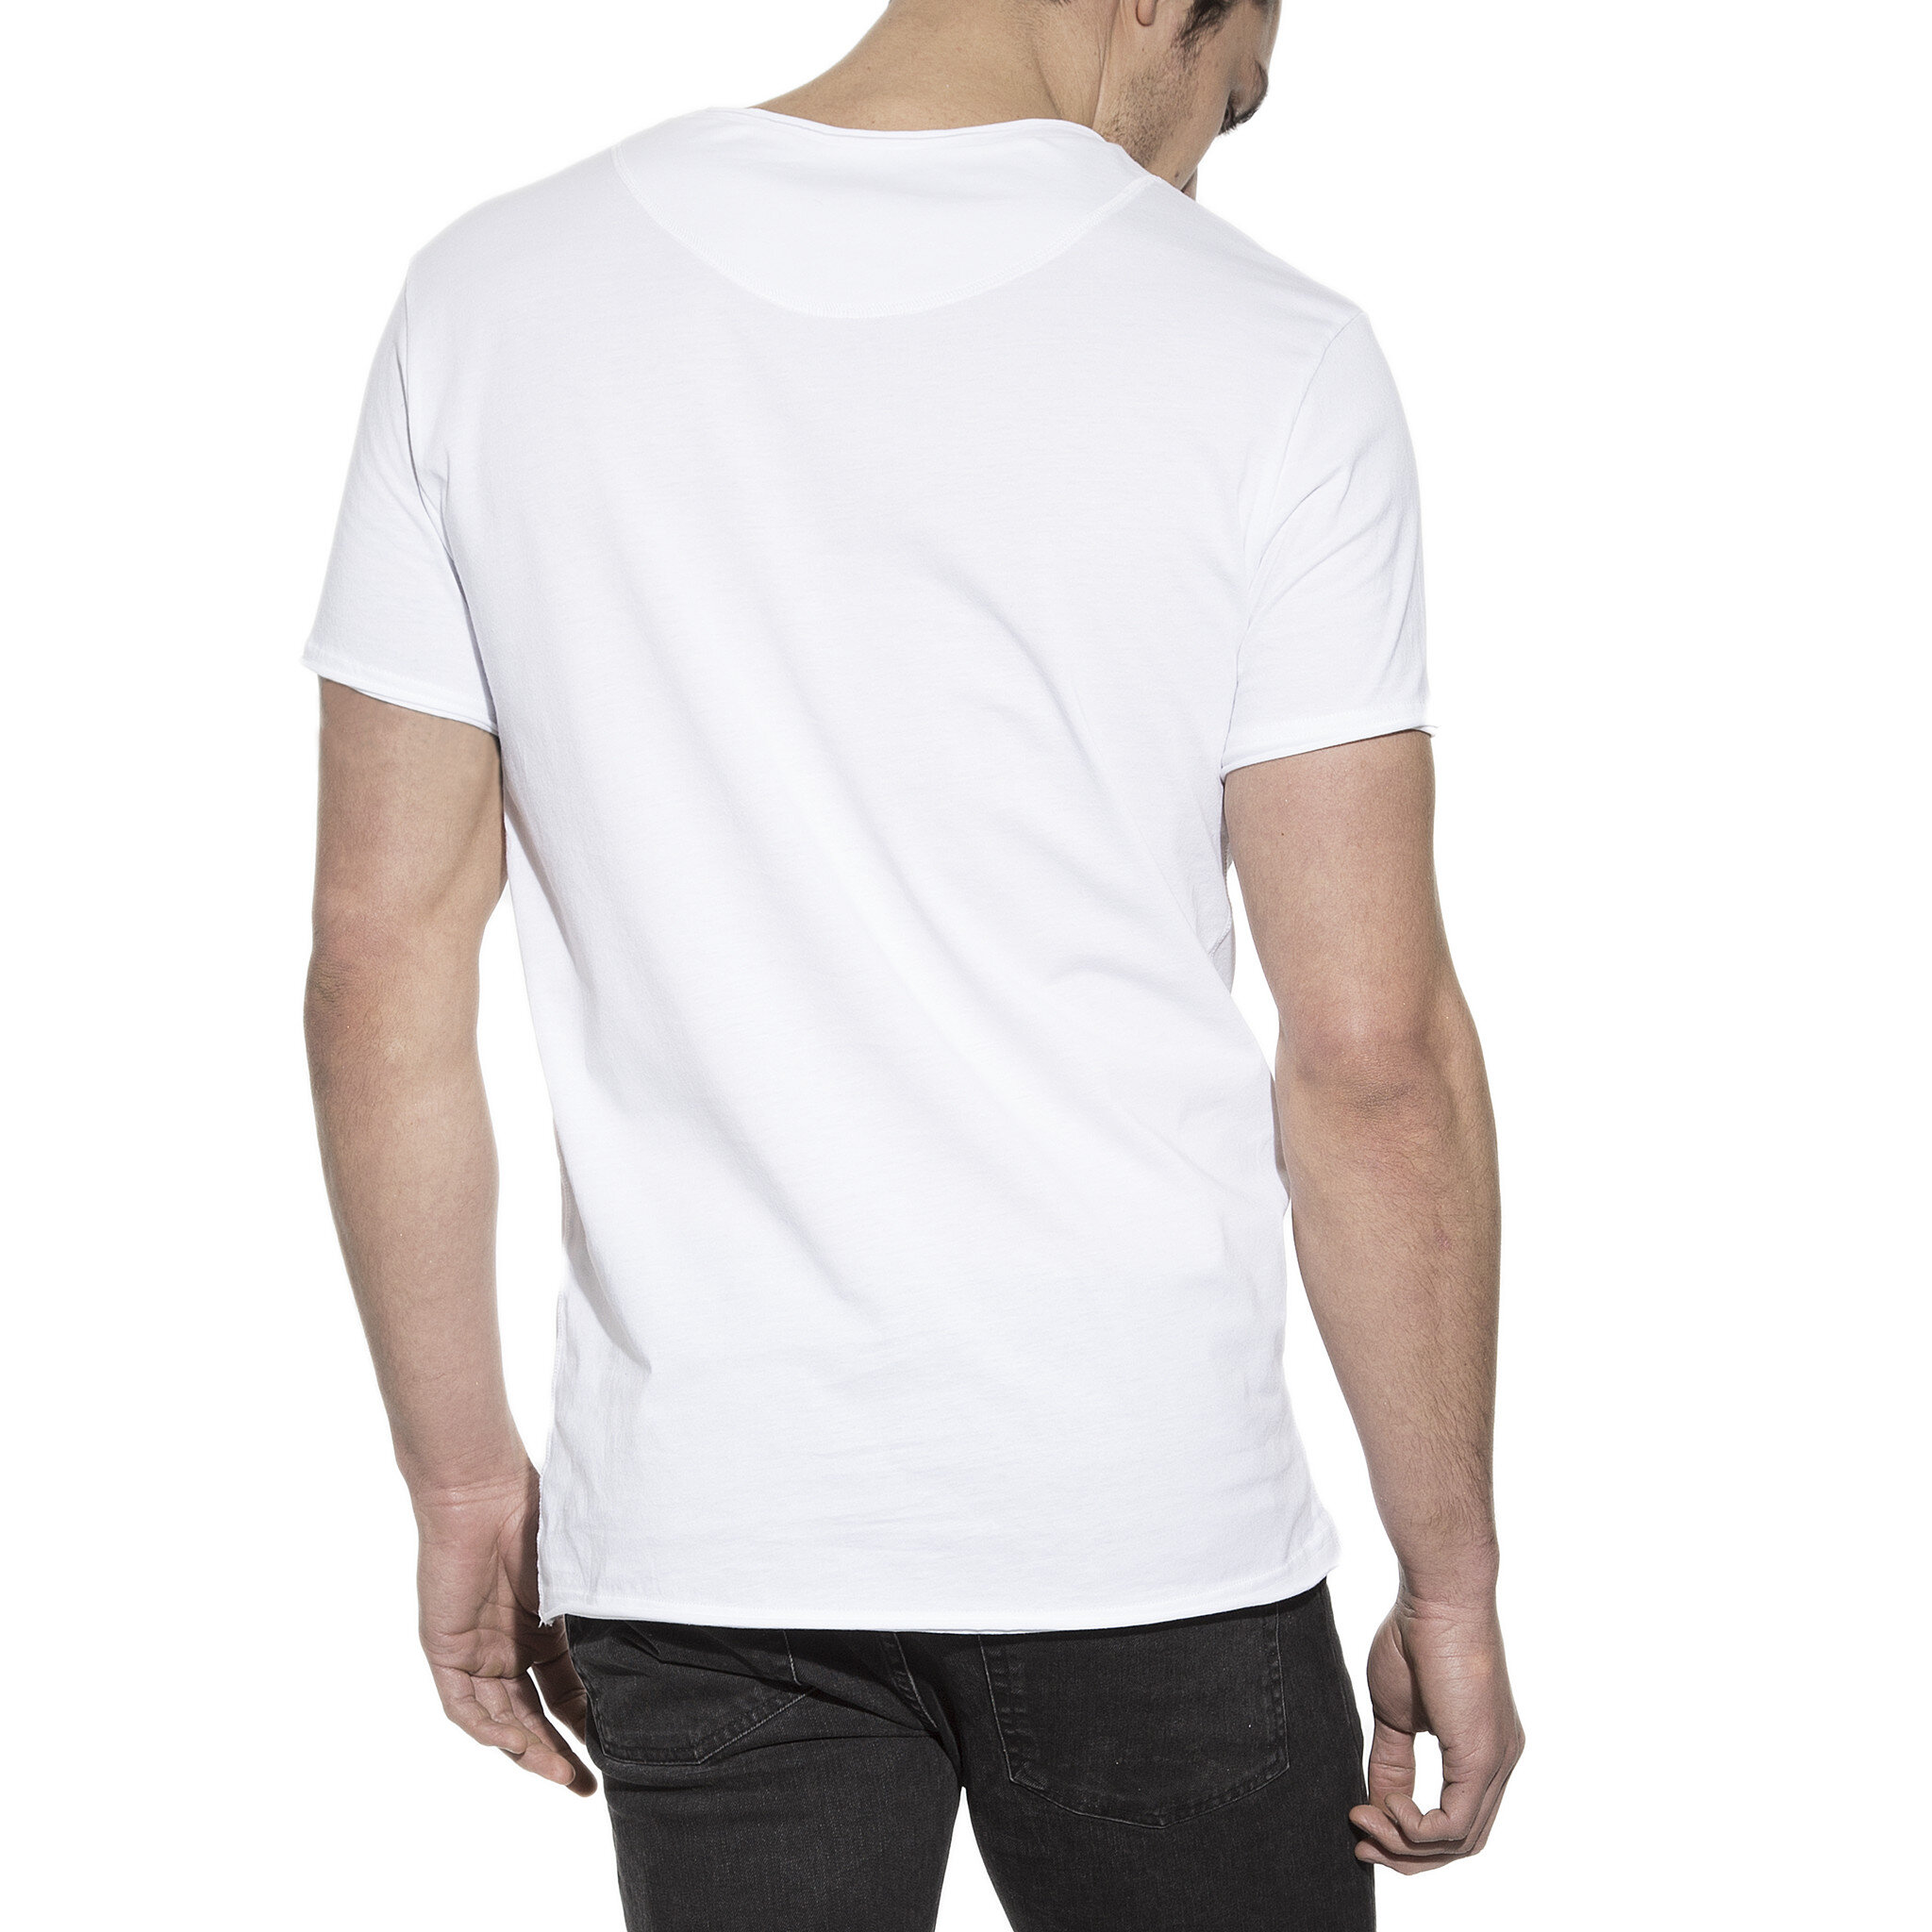 103201_Man_Crew-Neck_relaxed_white_3